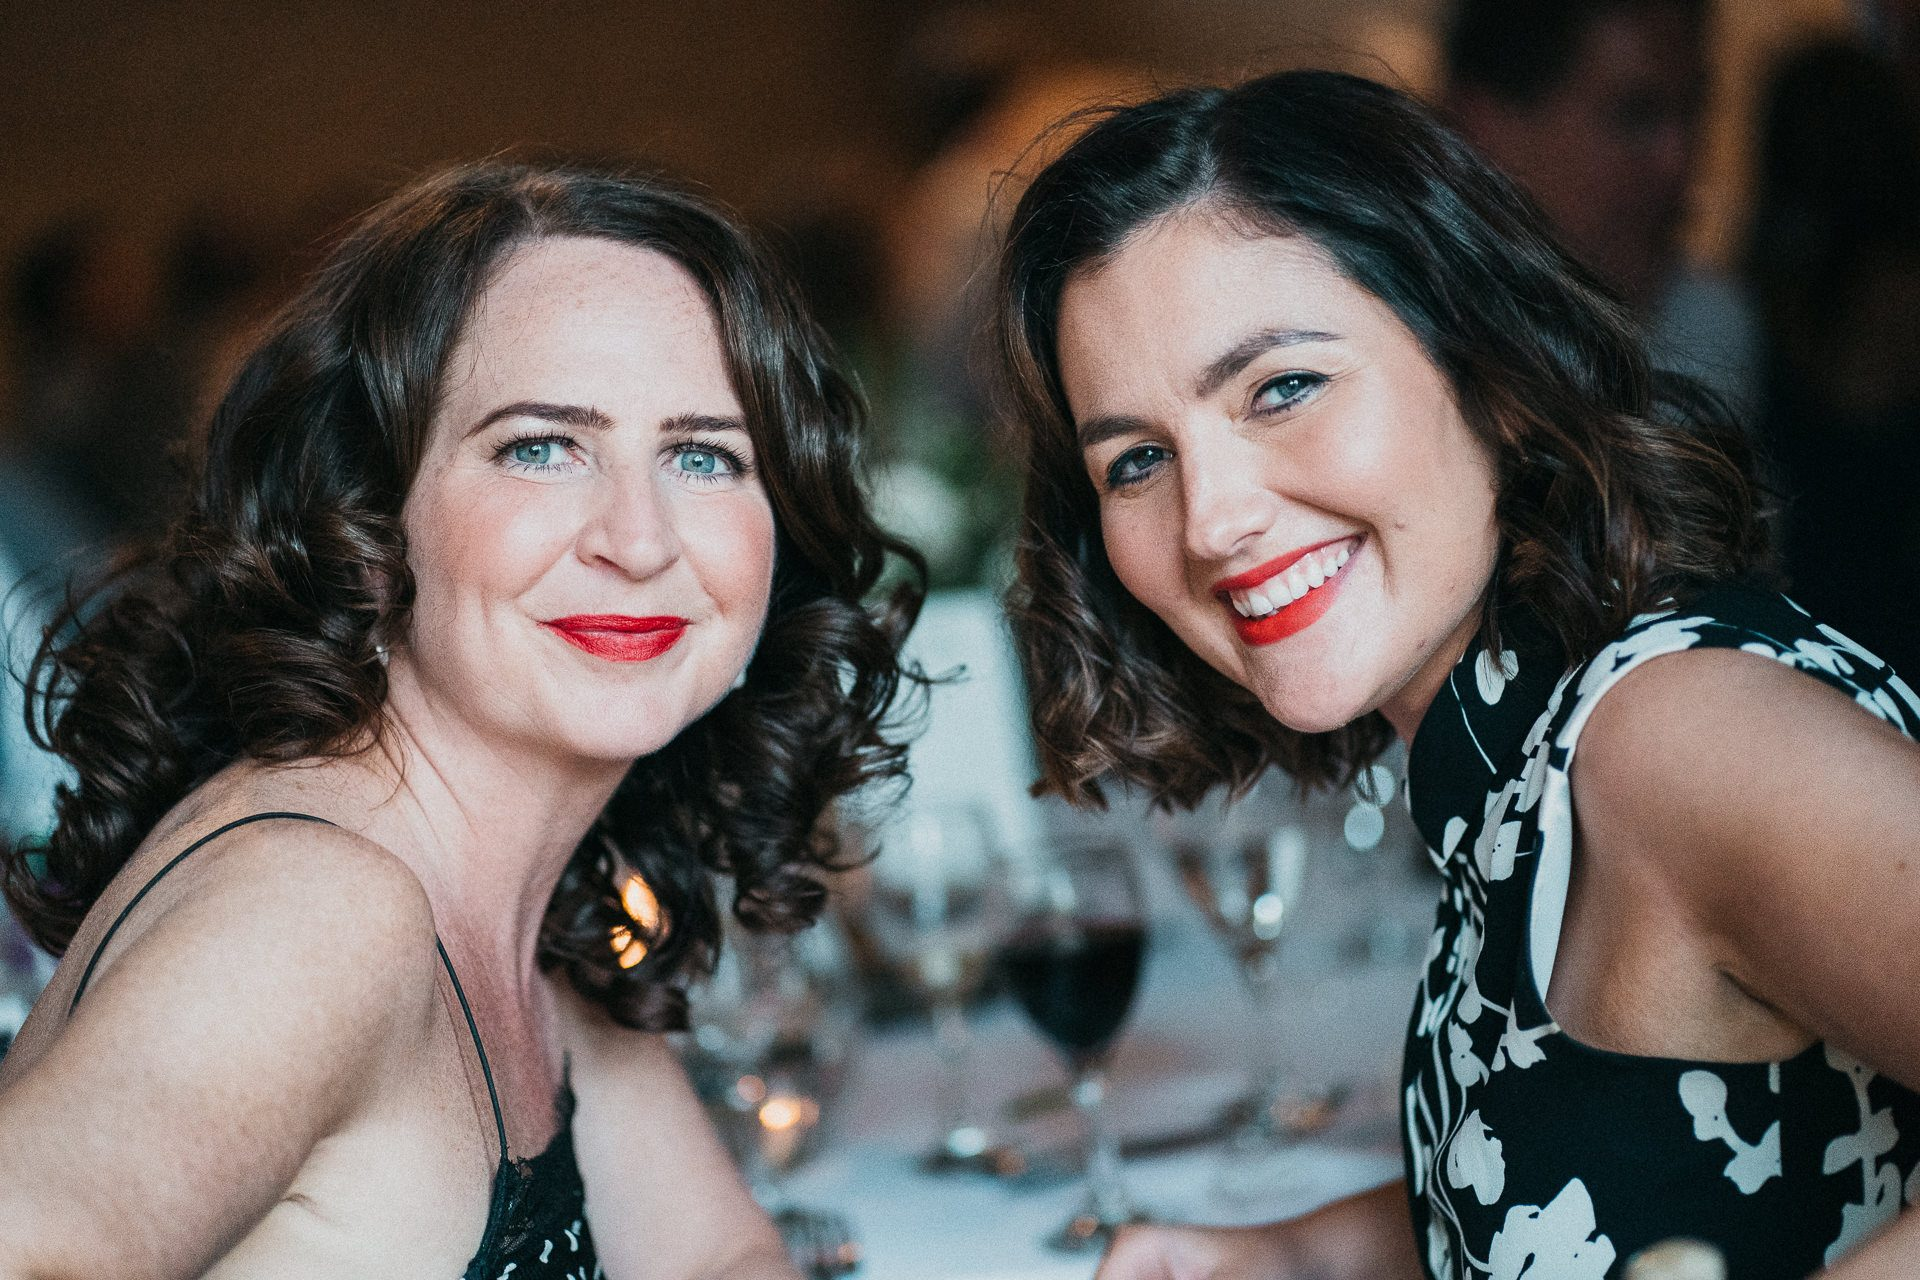 0120-DEVON-SOMERSET-WEDDING-PHOTOGRAPHER-0620-BEST-OF-2019-LOUISE-MAY-DEVON-SOMERSET-WEDDING-PHOTOGRAPHY-20190920-18-17-49-LM200511